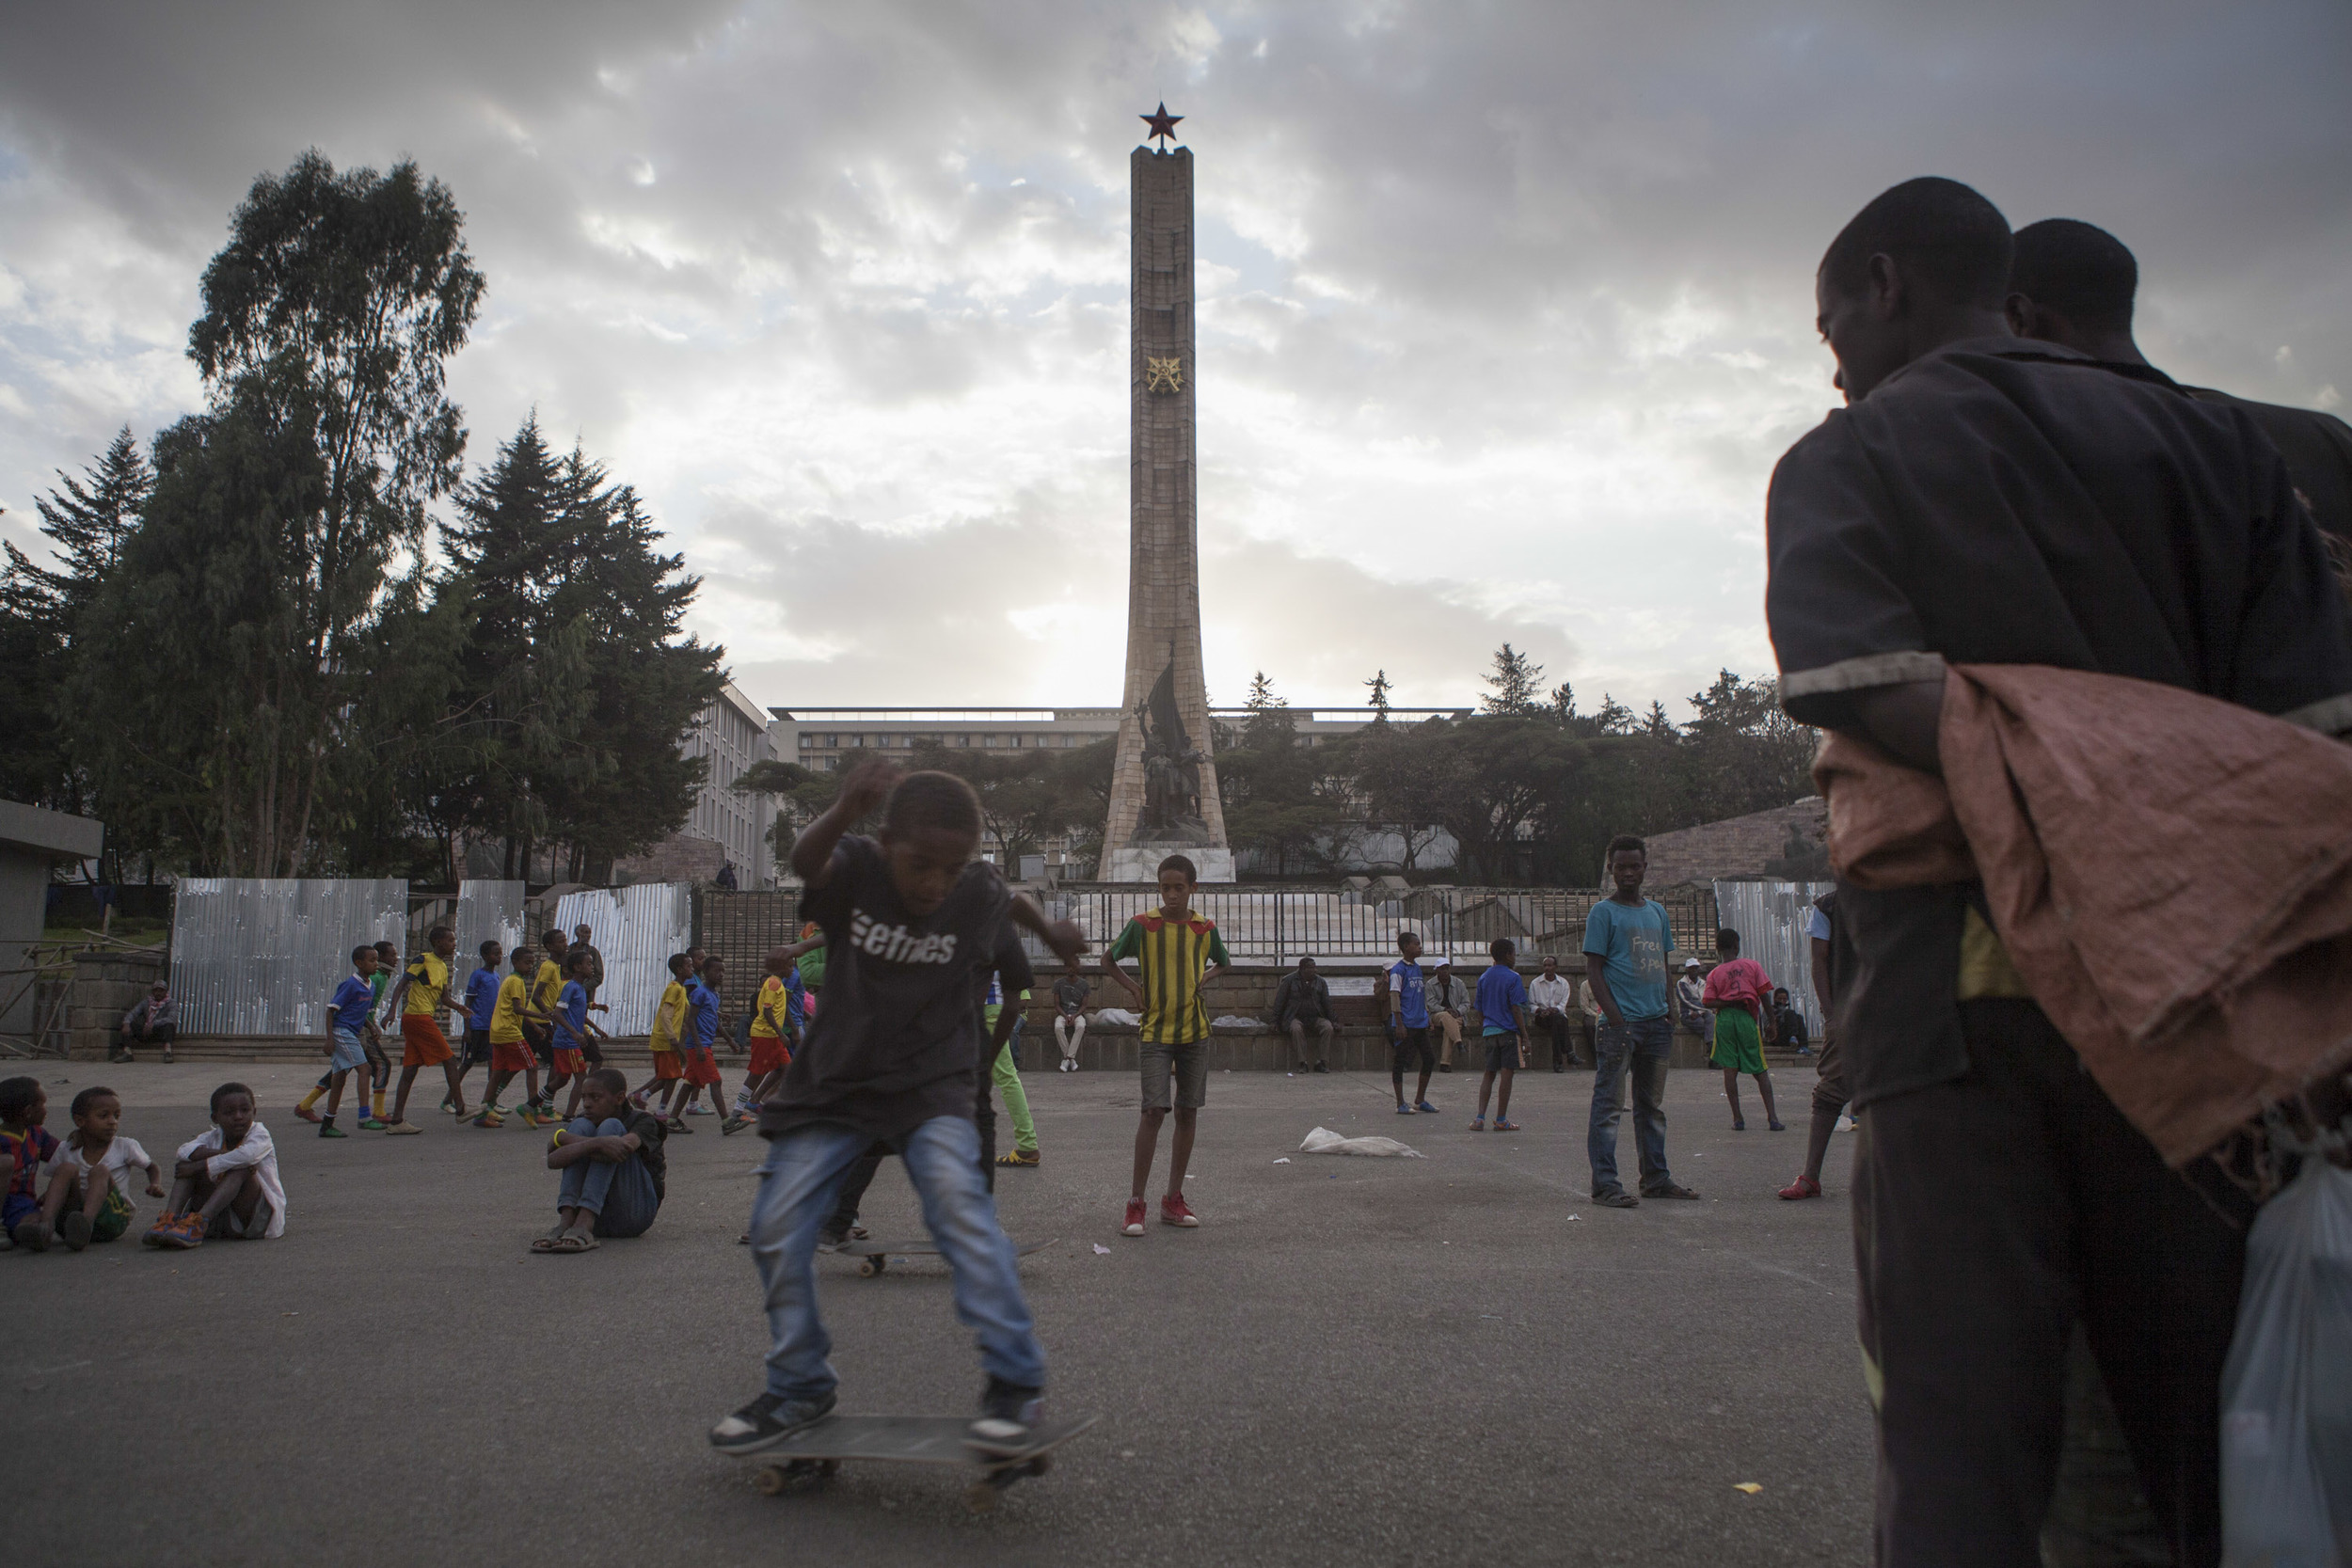 An Ethiopian skater, part of the Ethioskate organization, are pictured in the National Museum area of Addis Ababa on 12 March 2015.  There is a growing skateboarding movement happening in Ethiopia, being taken up by various skating groups of young people of assorted ages ranging form 7 to 22 years old. AFP Photo / Zacharias Abubeker